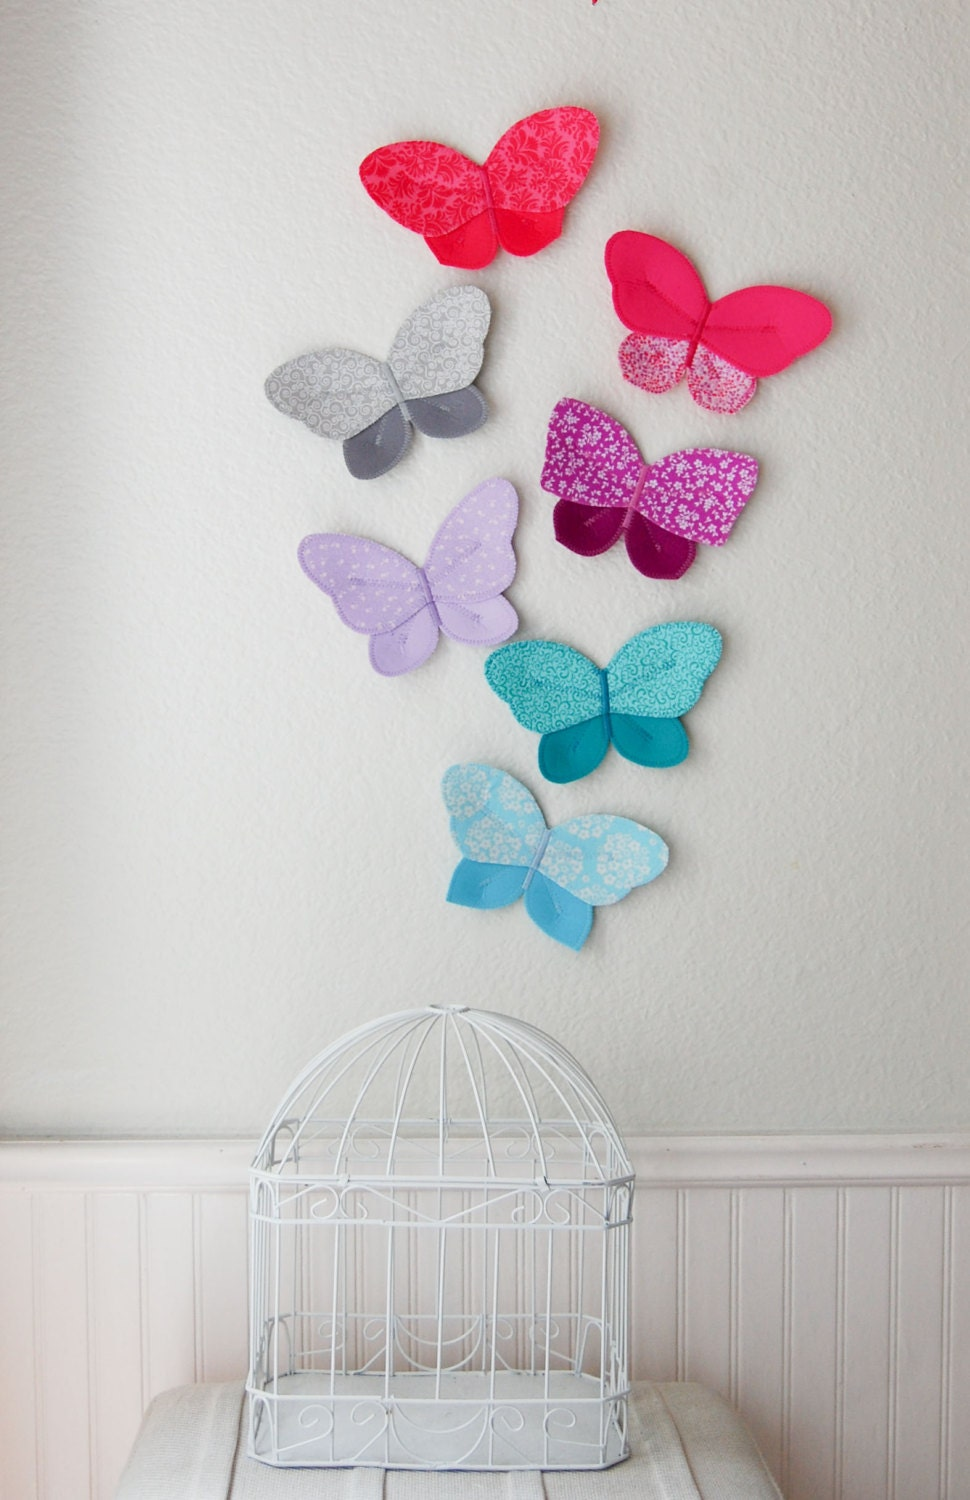 Nursery Wall Decor Butterflies : D fabric butterfly wall decor for girls room nursery